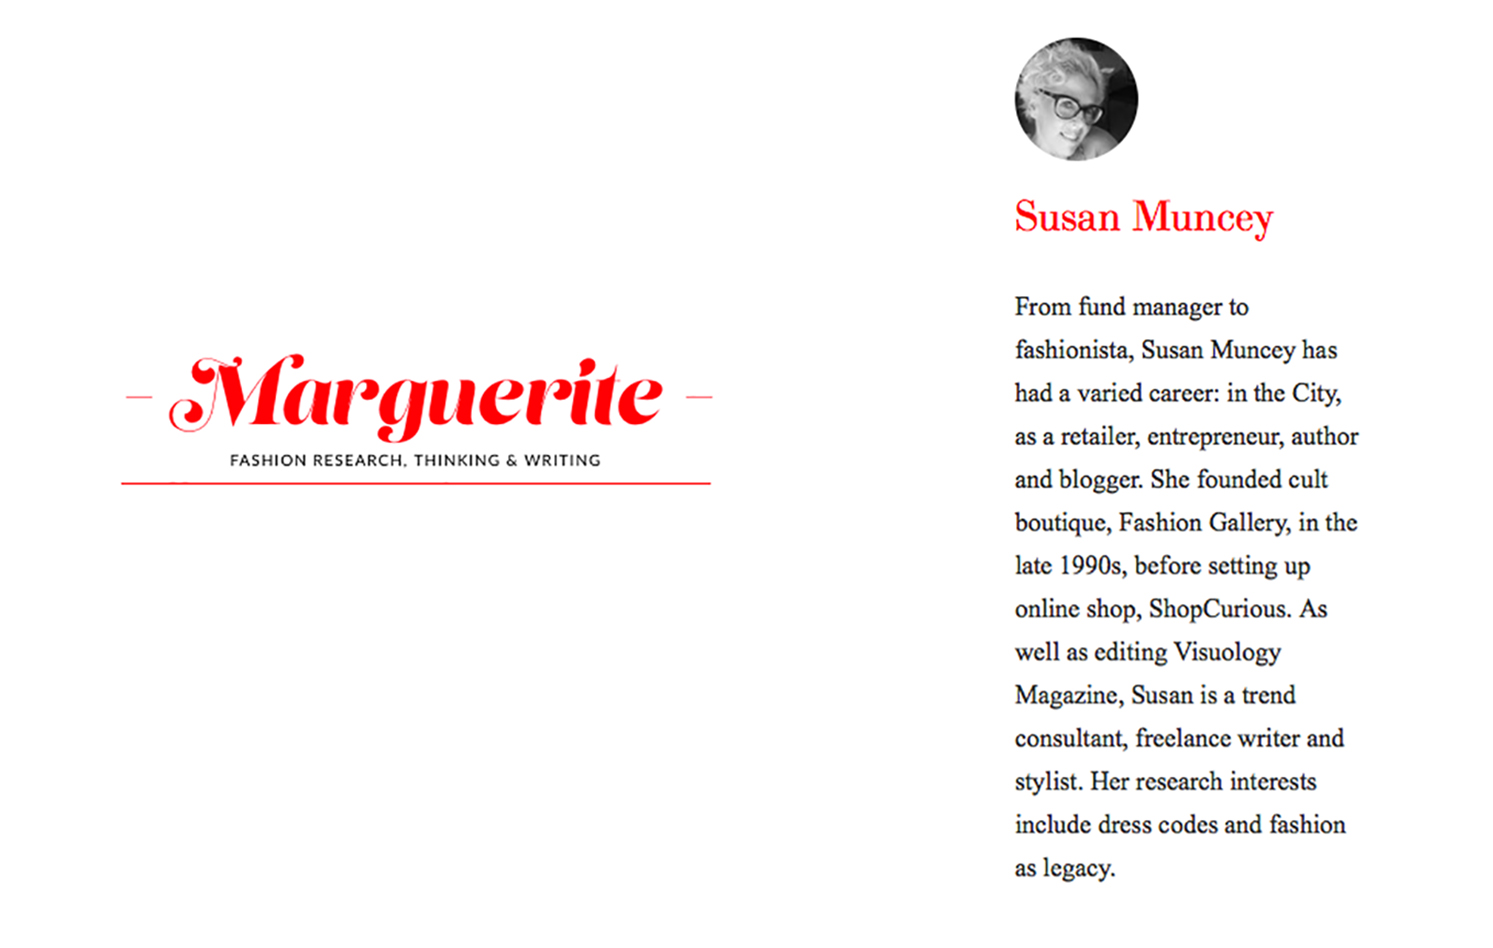 MARGUErite - Contributor and Commissioning Editor at www.margueritedeponty.com, the 'fashion research, thinking and writing' website of London College of Fashion's MA Fashion Cultures course.